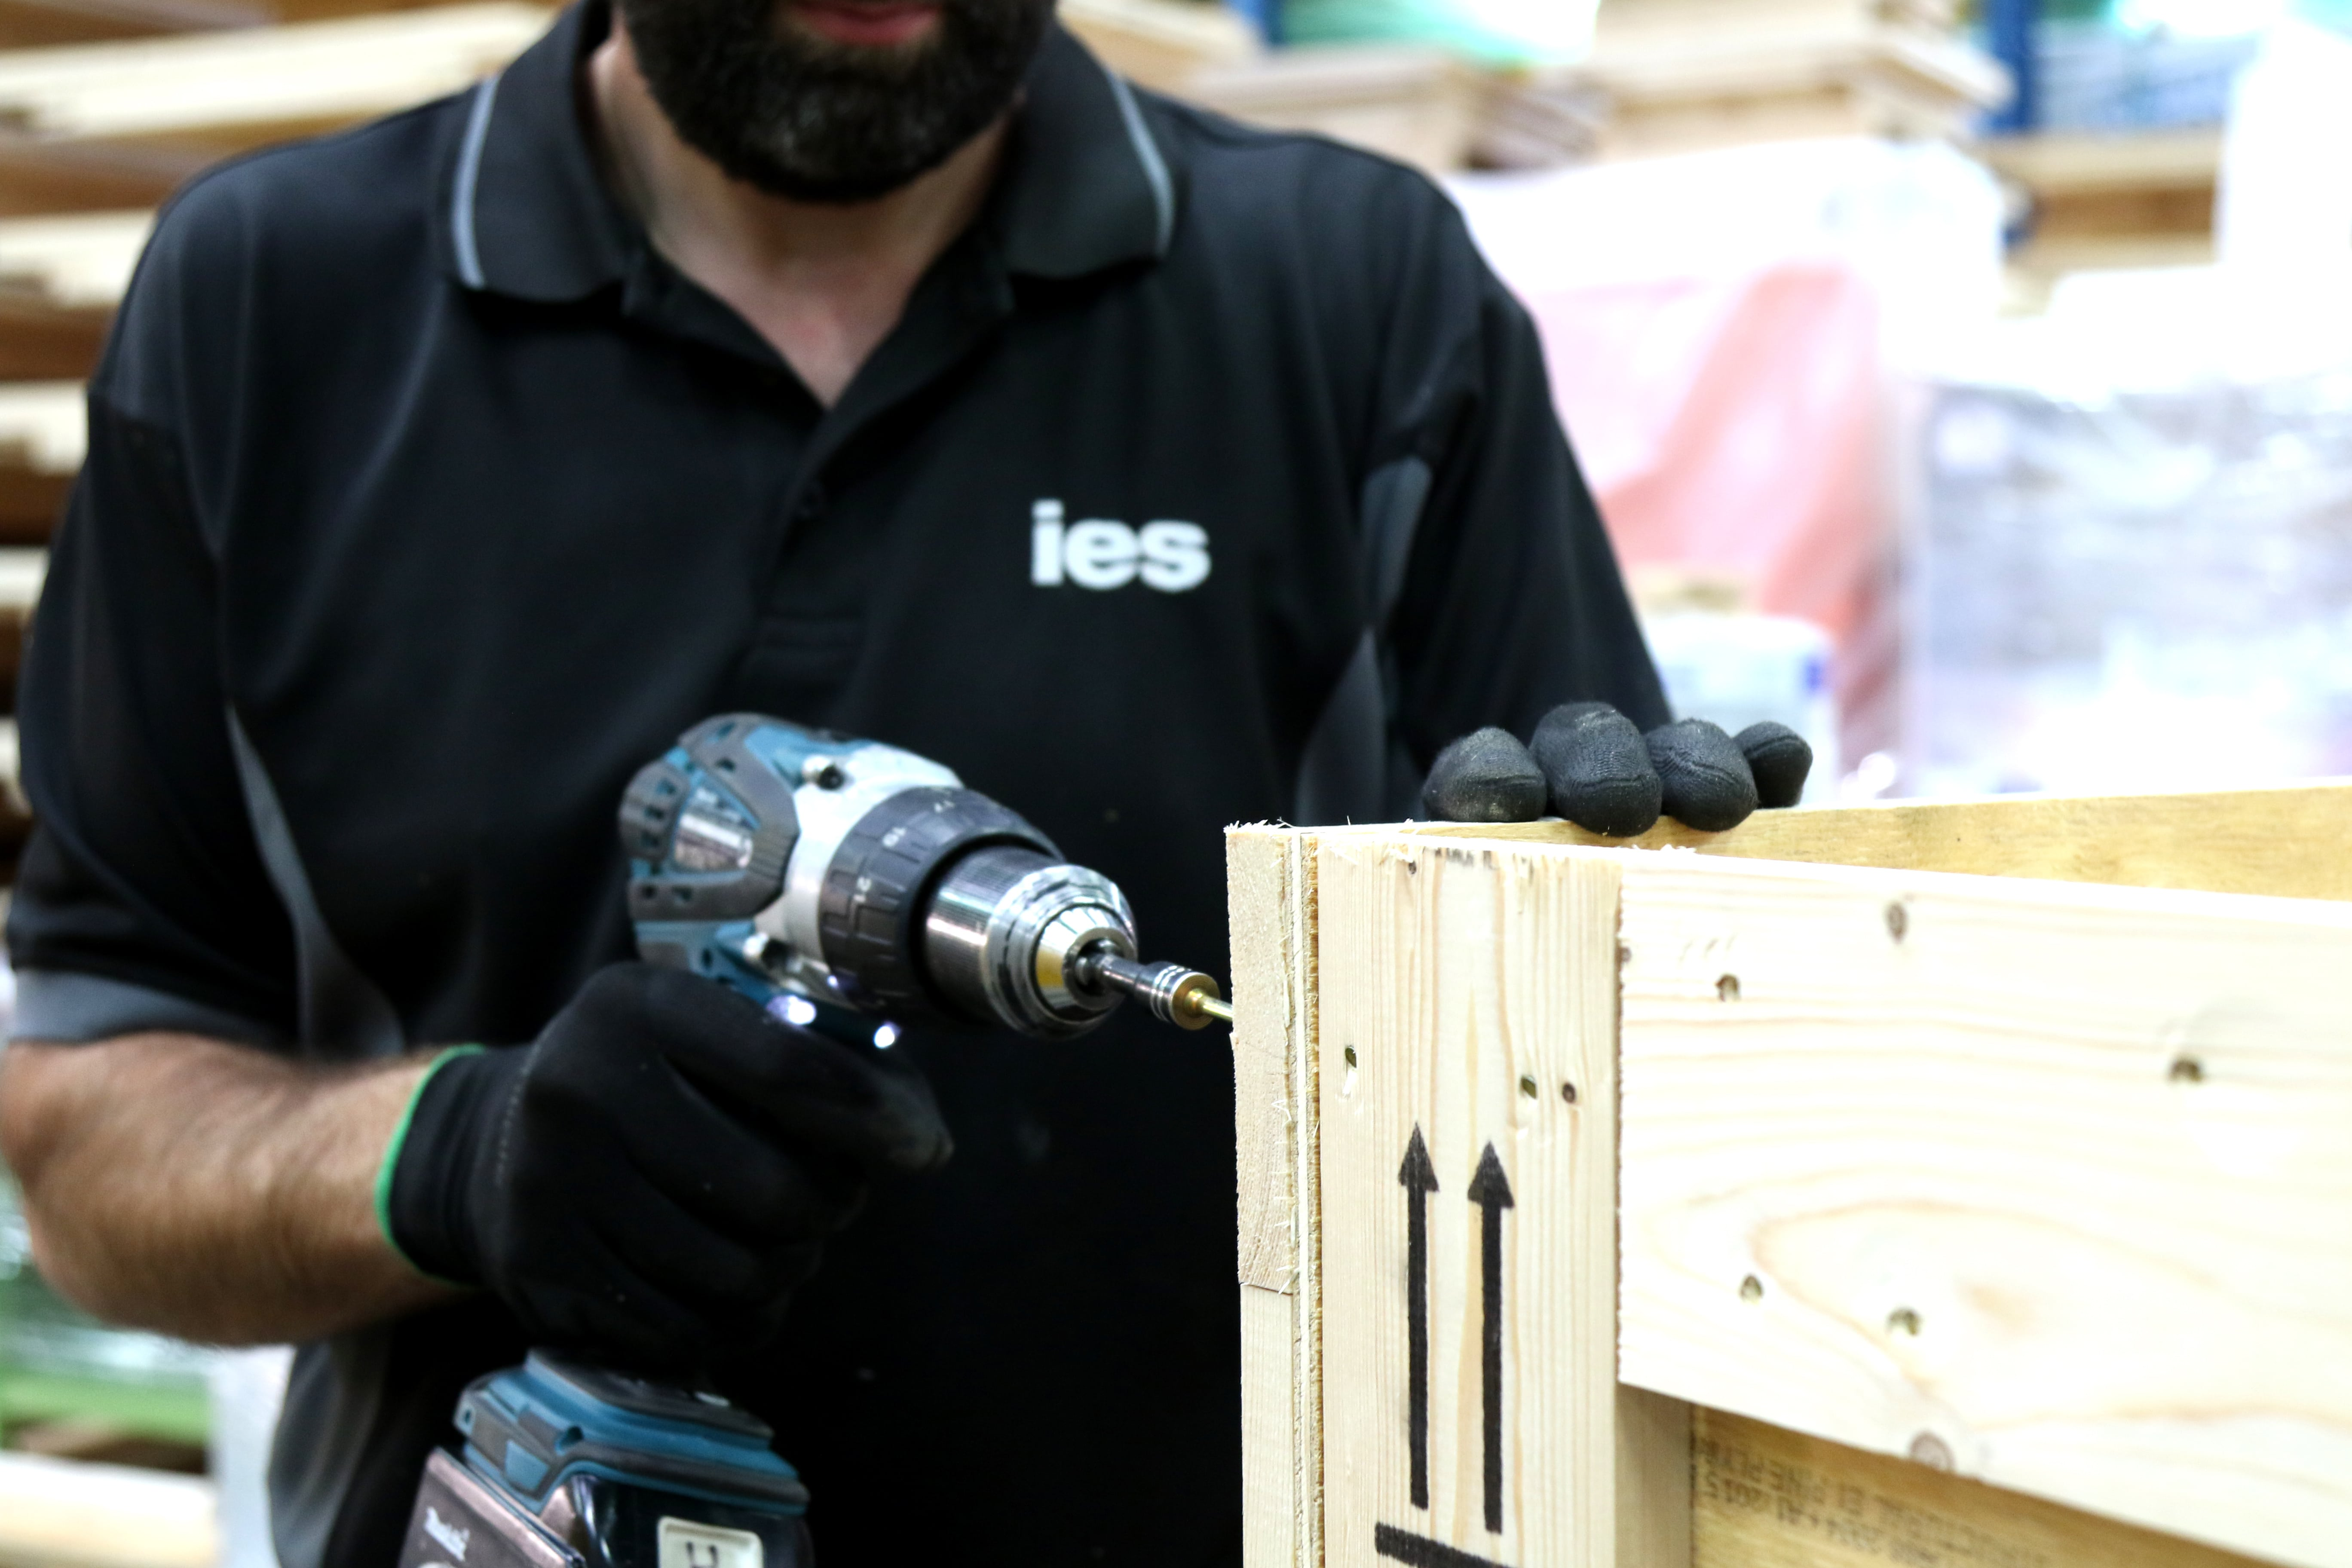 IES Crate Making Service